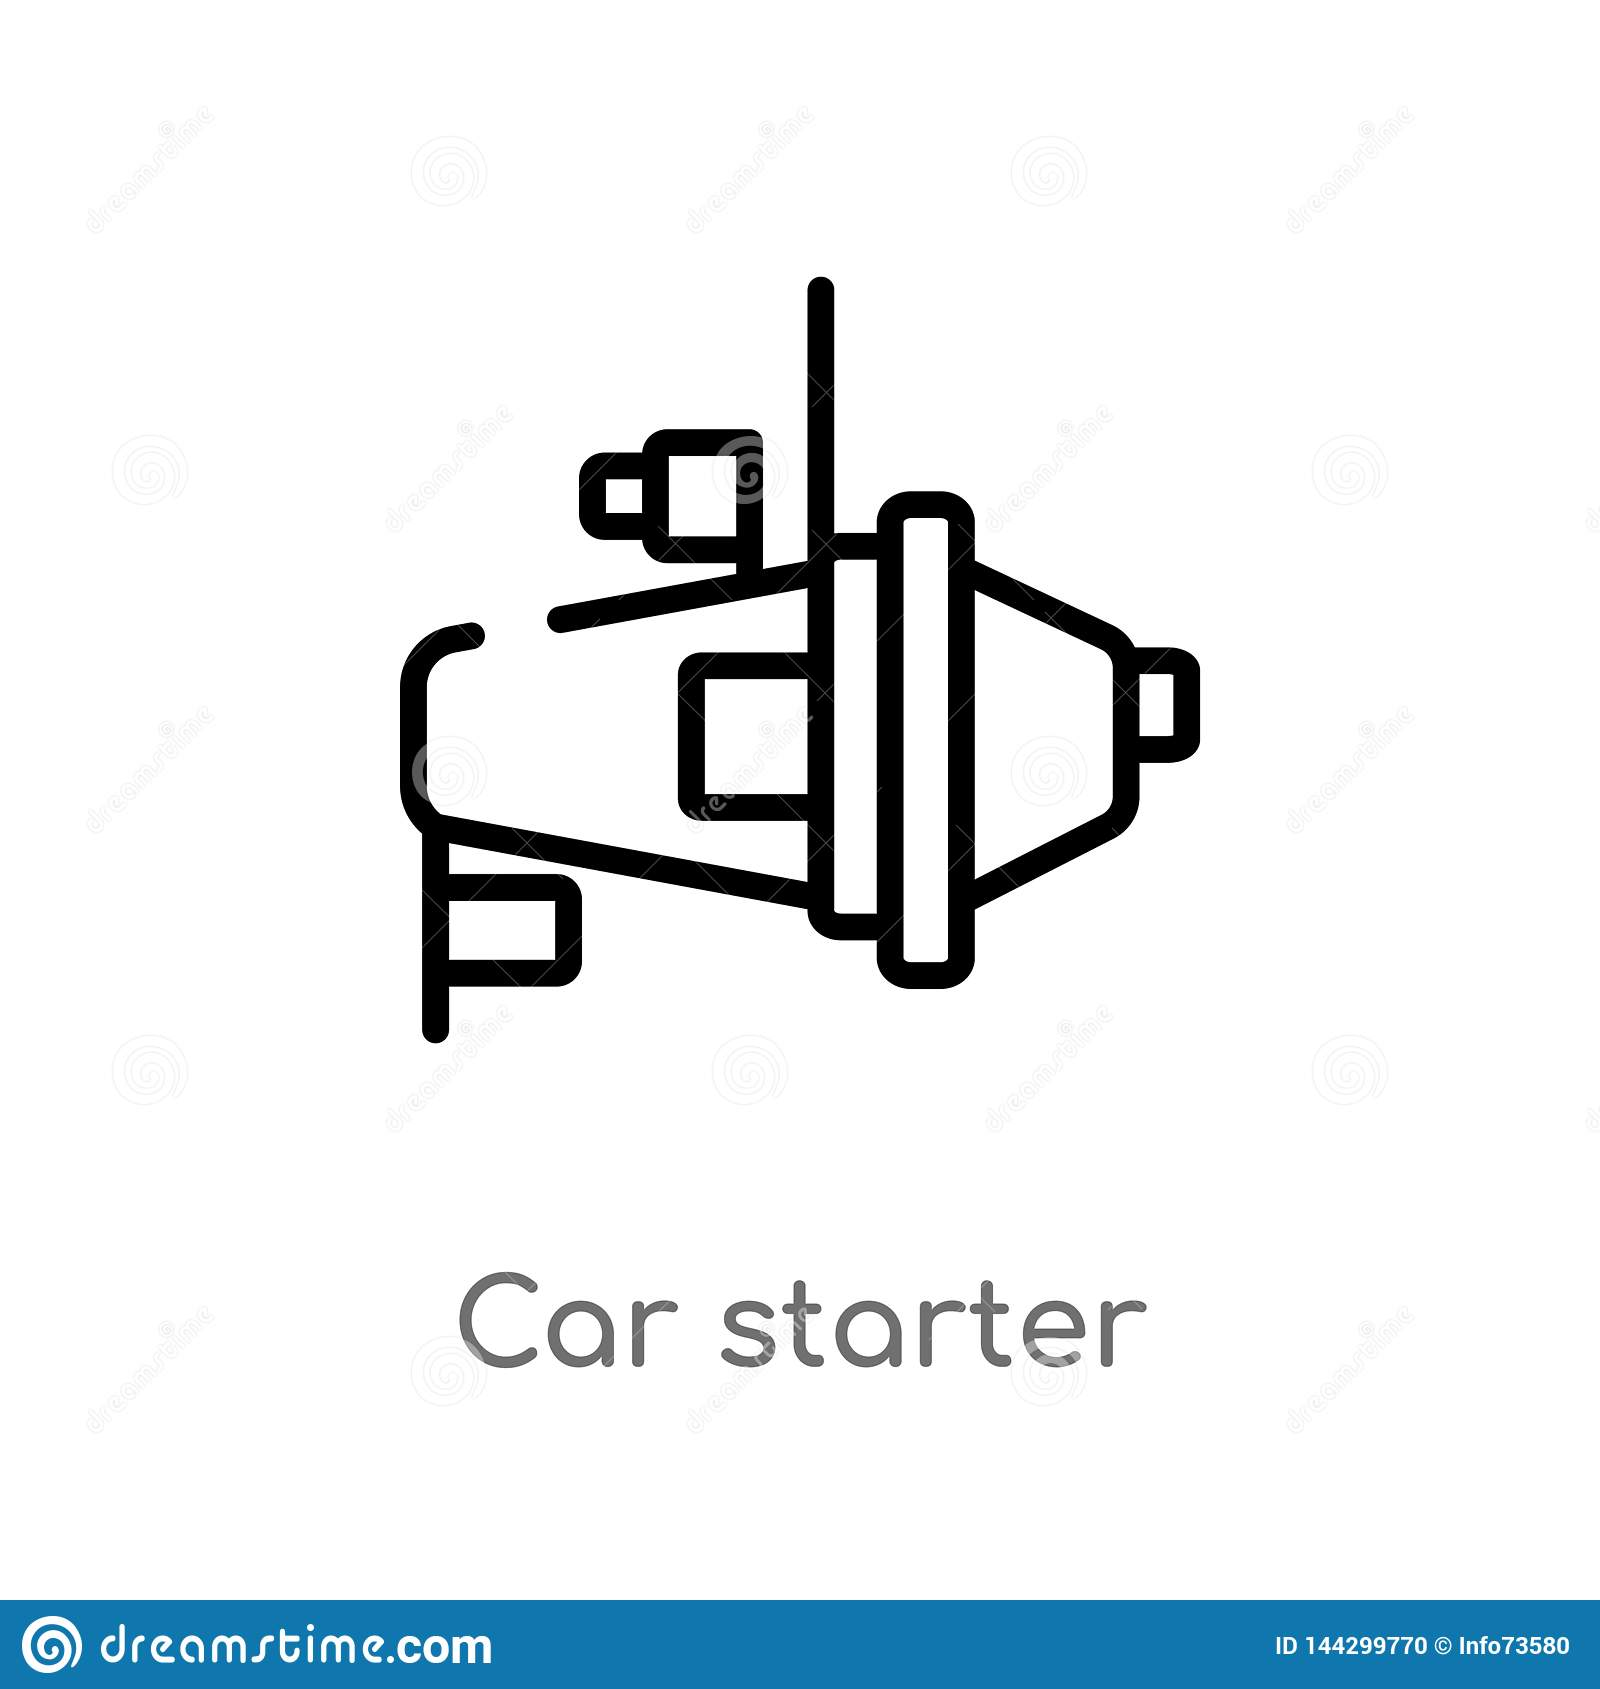 outline car starter vector icon  isolated black simple line element  illustration from car parts concept